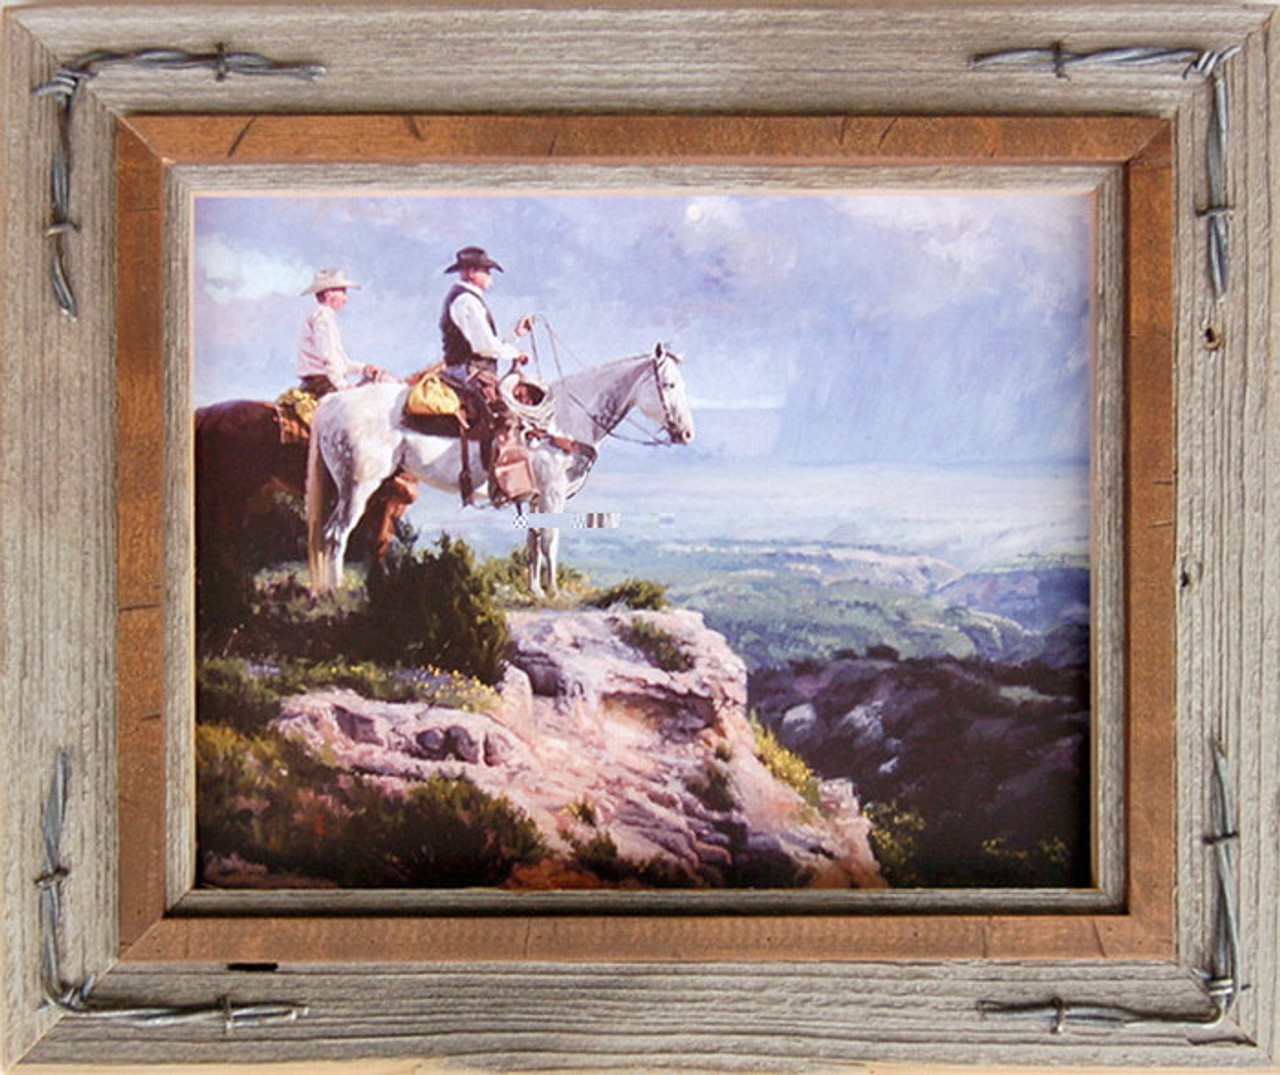 Western Frames | Reclaimed Barnwood With Barbed Wire 11x14